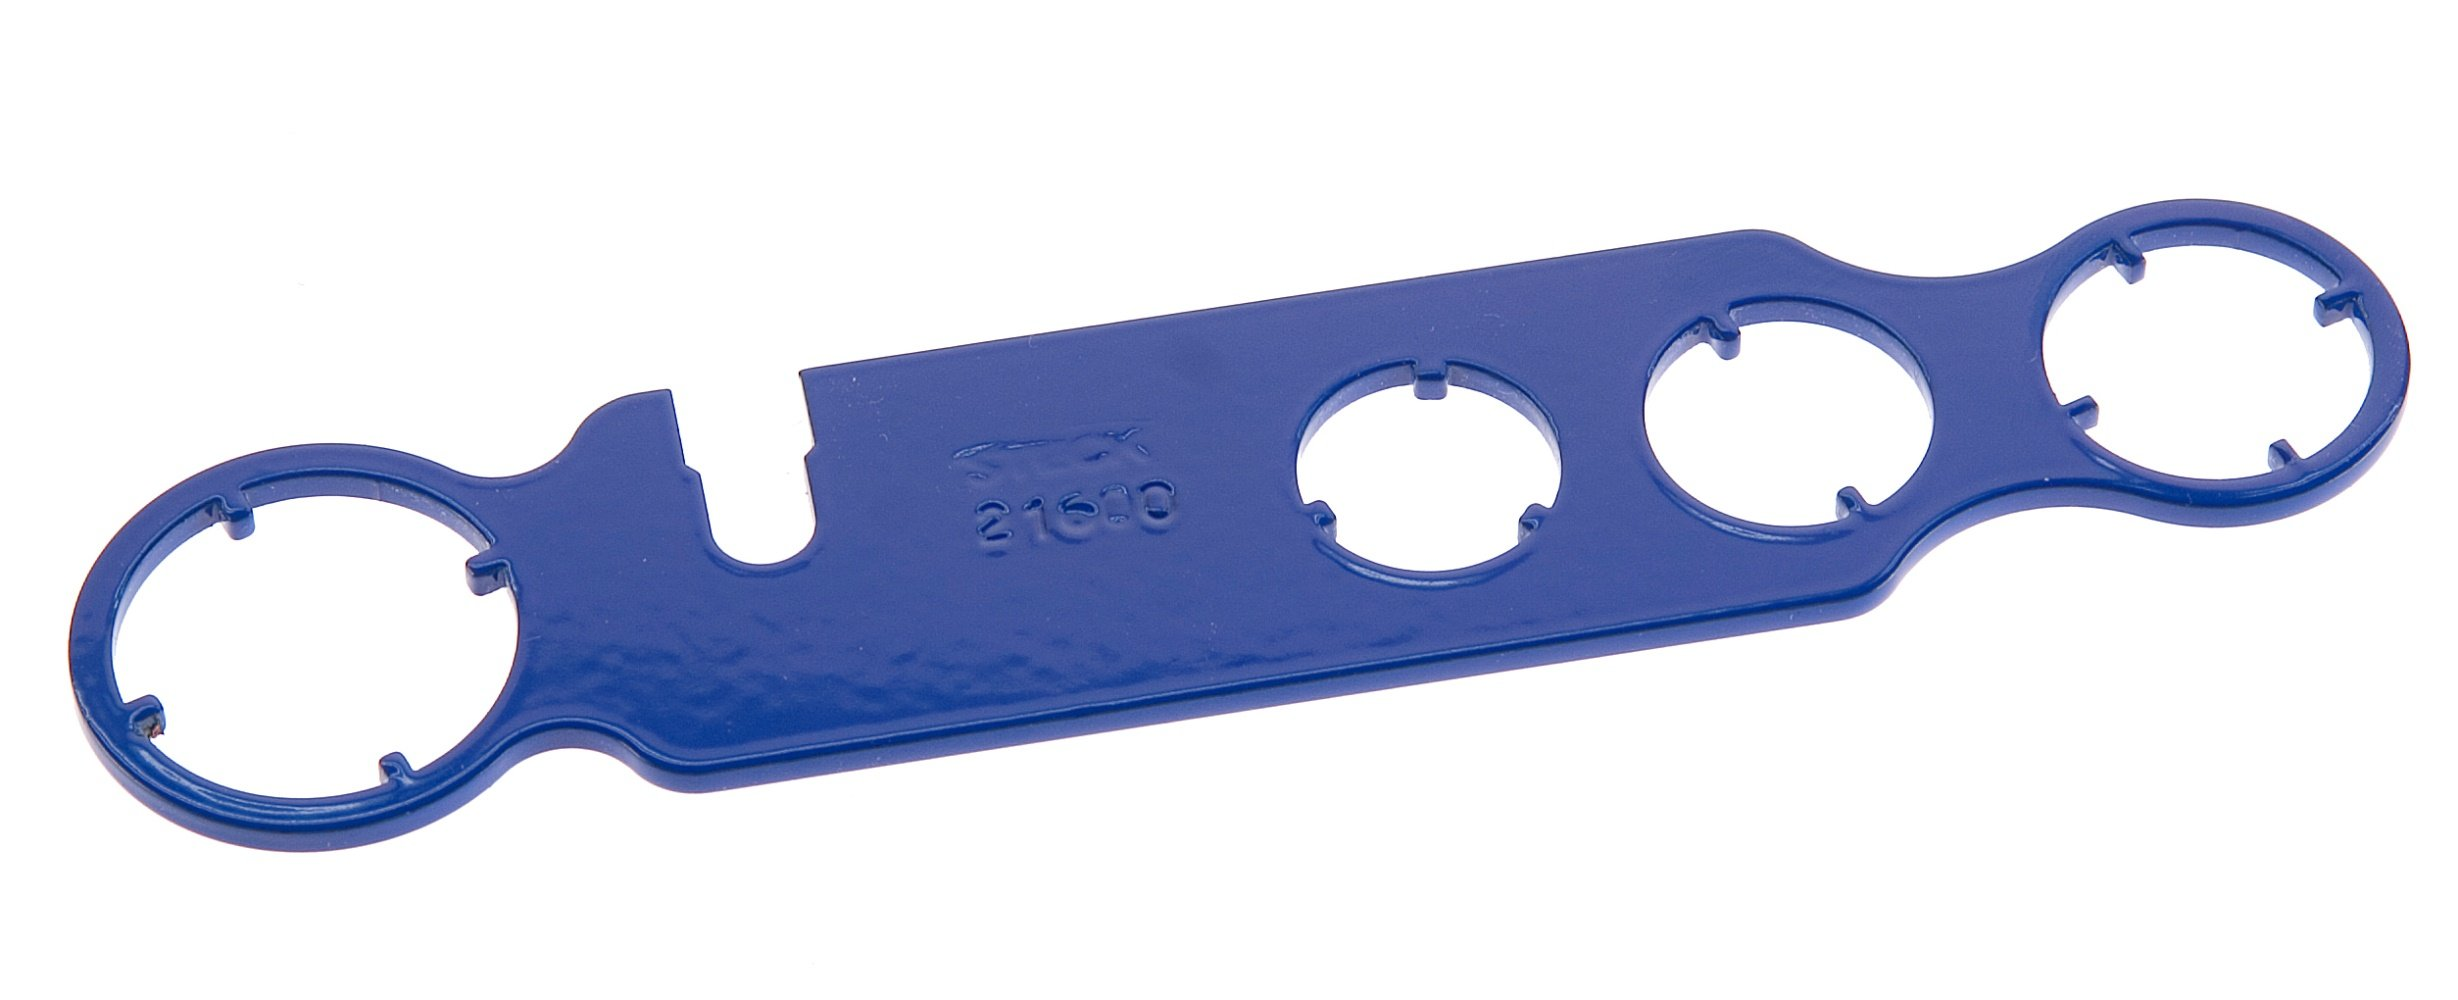 Steck Manufacturing 21600 Antenna Bezel Nut Multi-wrench by Steck Manufacturing